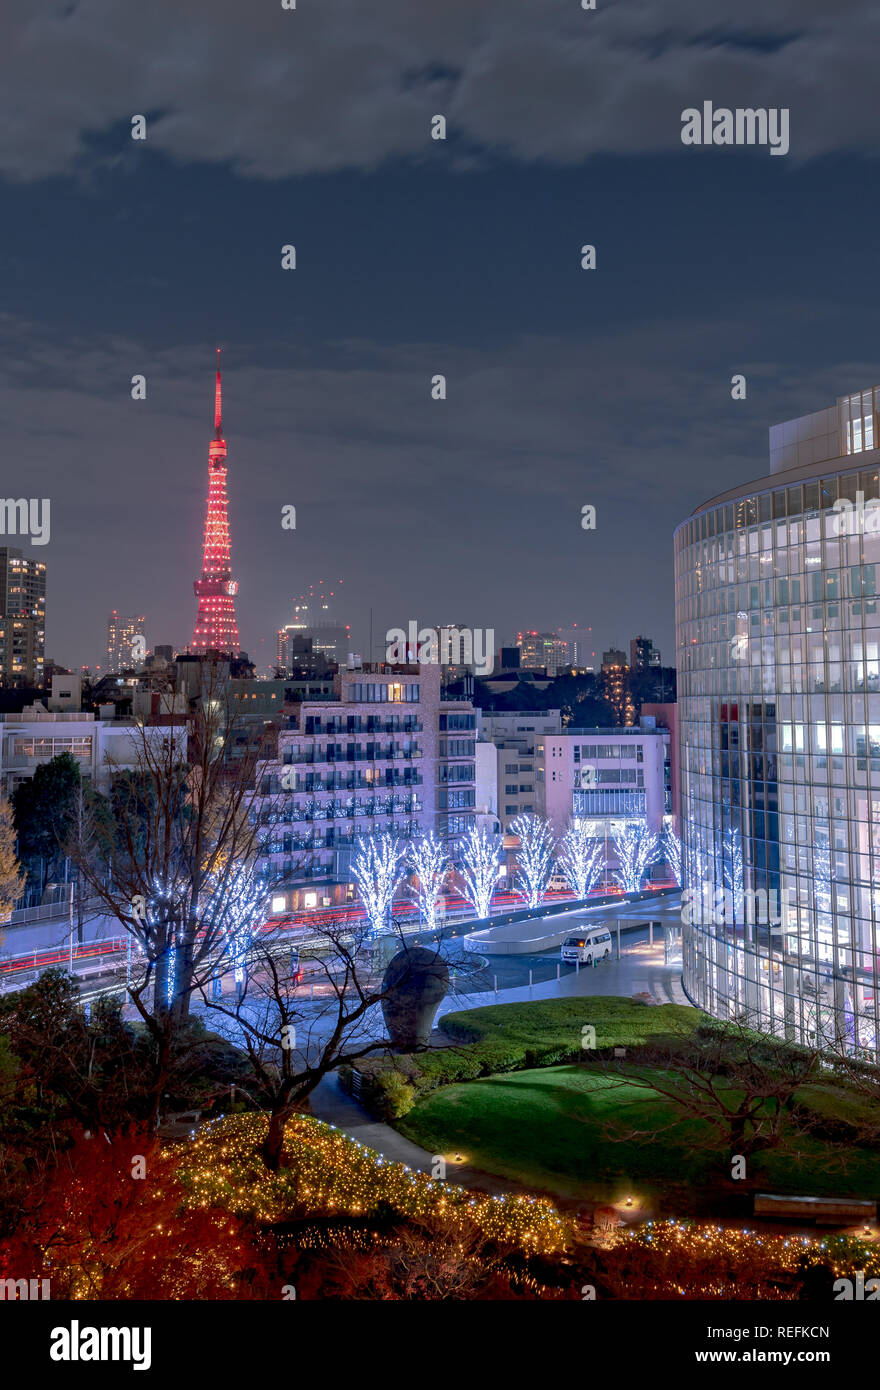 Night view at Mori Garden during winter illumination with Tokyo tower as background, Tokyo, Japan. - Stock Image